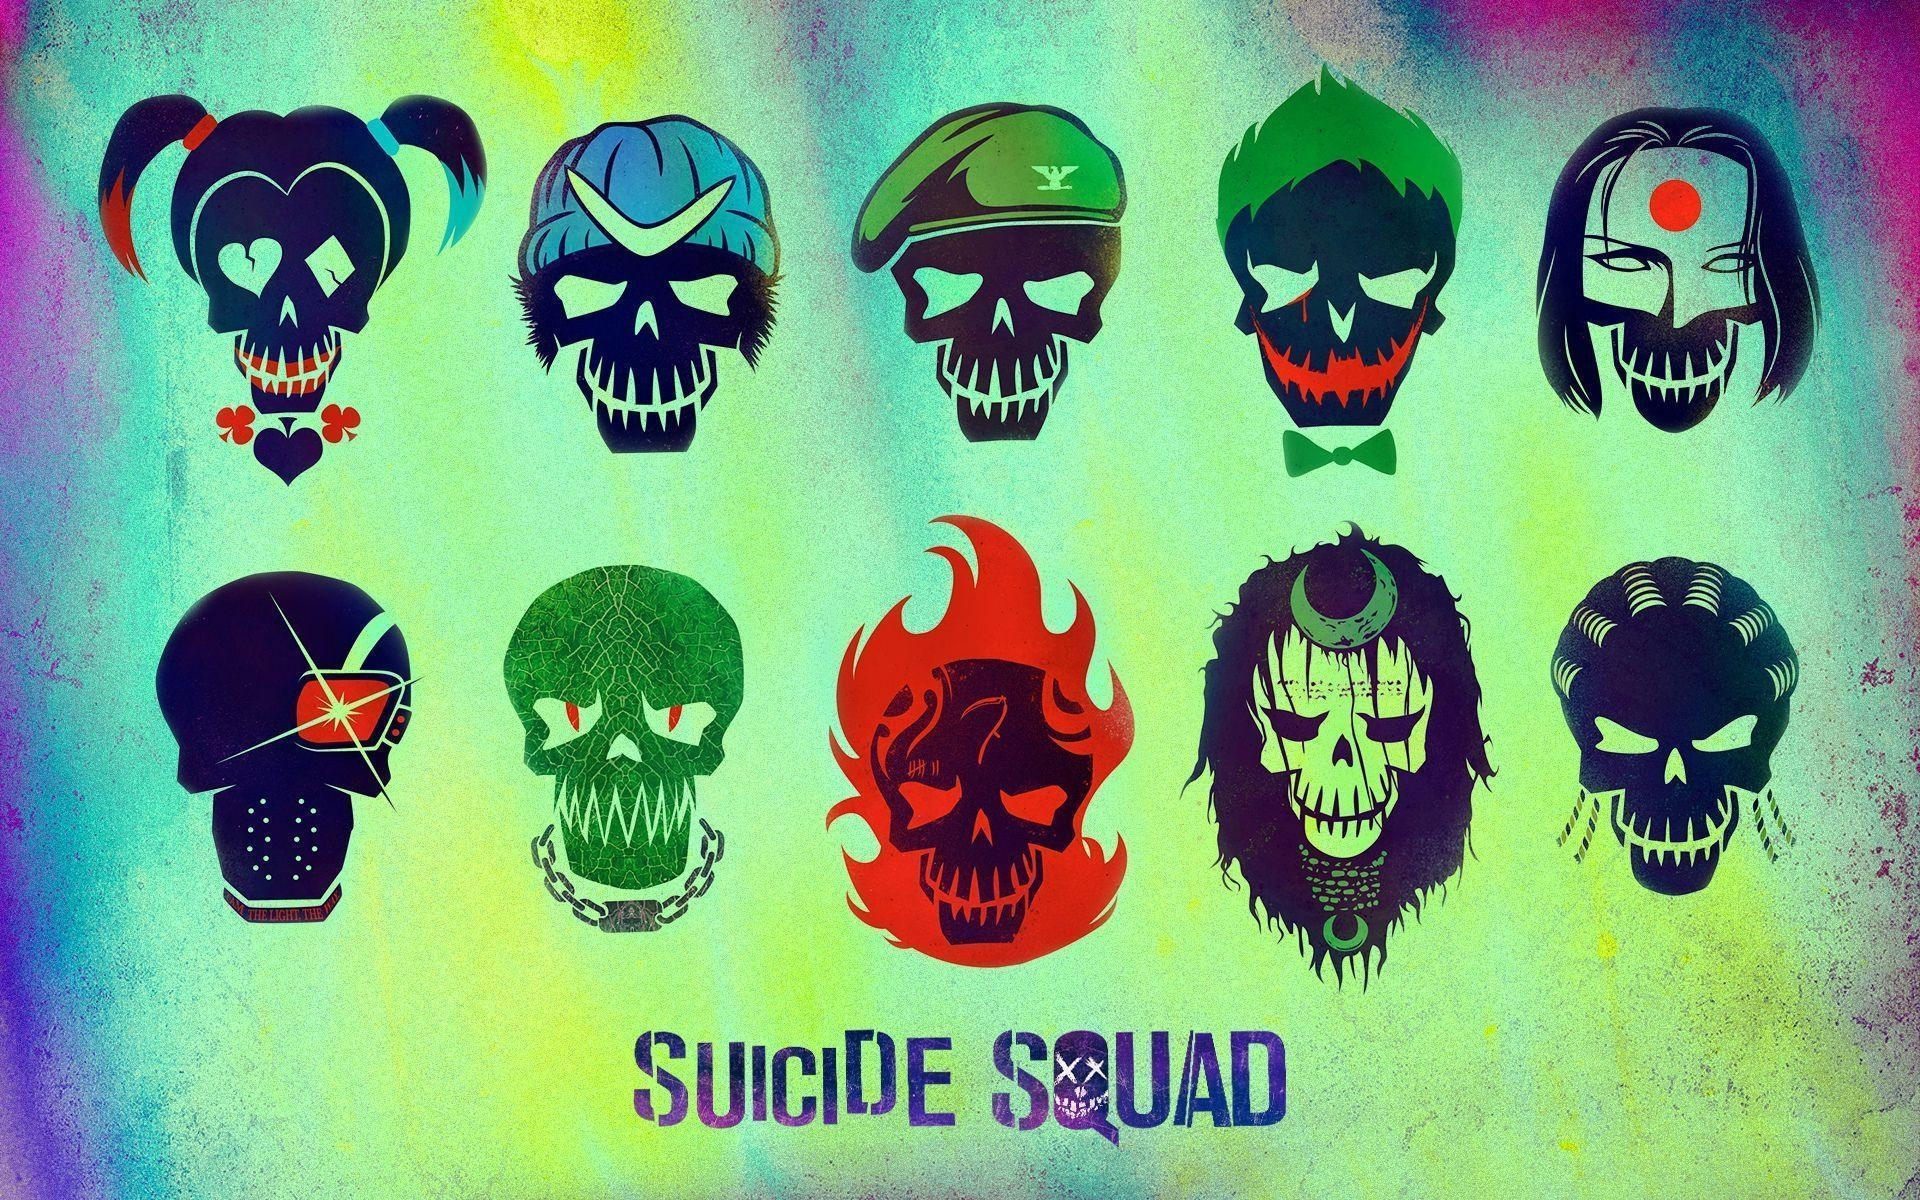 suicide squad wallpapers - wallpaper cave